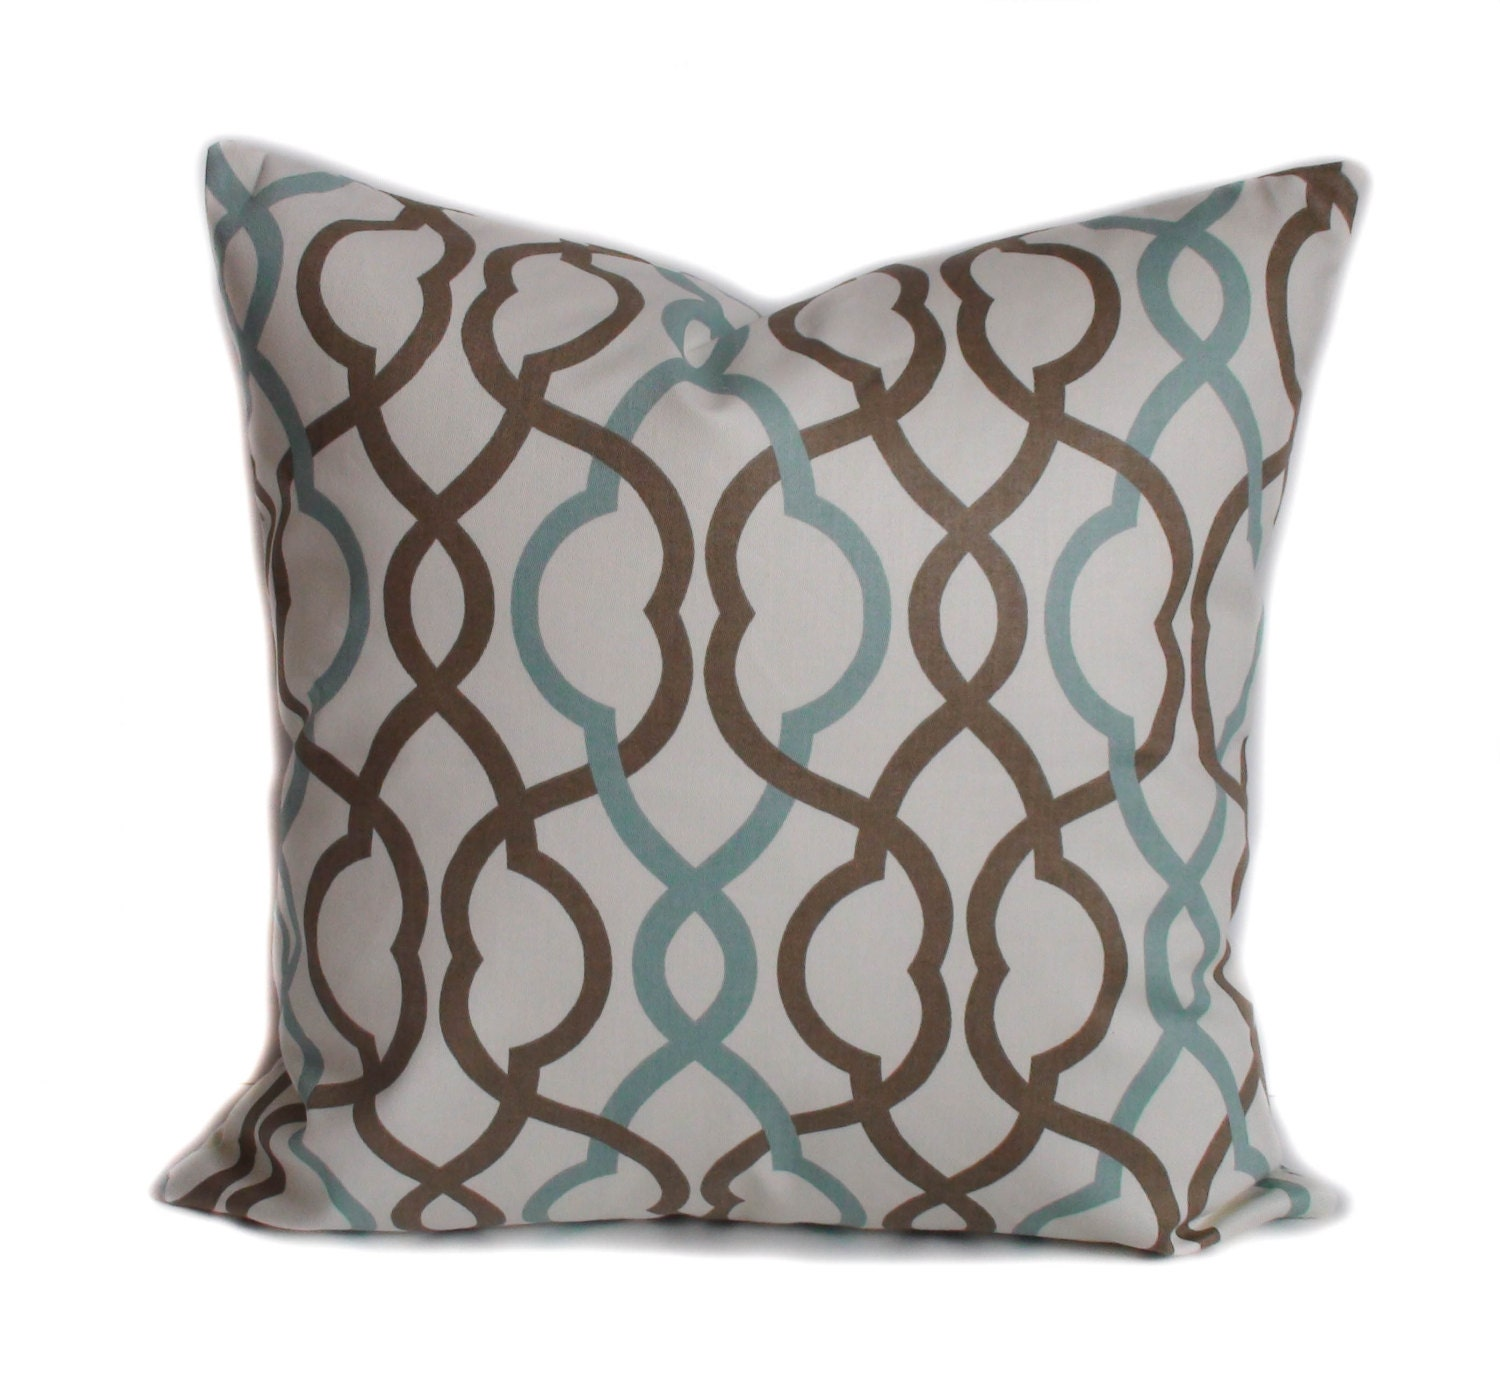 Decorative Pillow Brown : Blue pillow cover Brown pillow Decorative pillow Throw